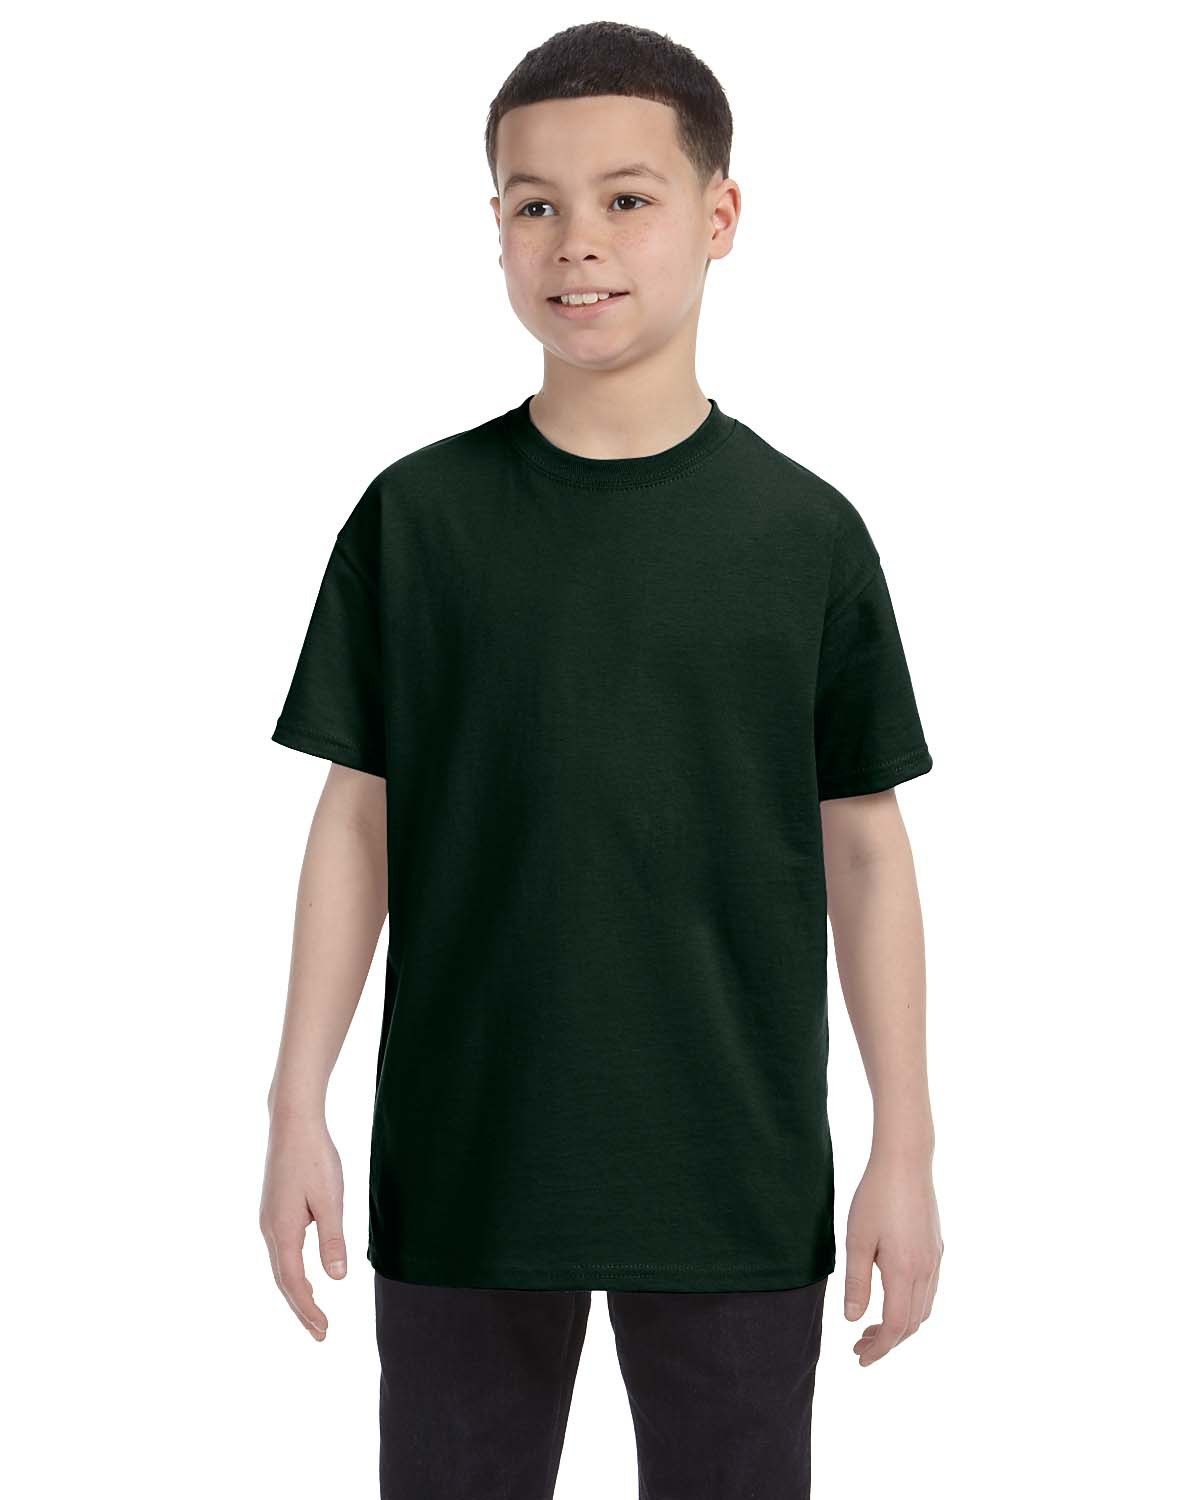 Hanes Youth Authentic-T T-Shirt DEEP FOREST